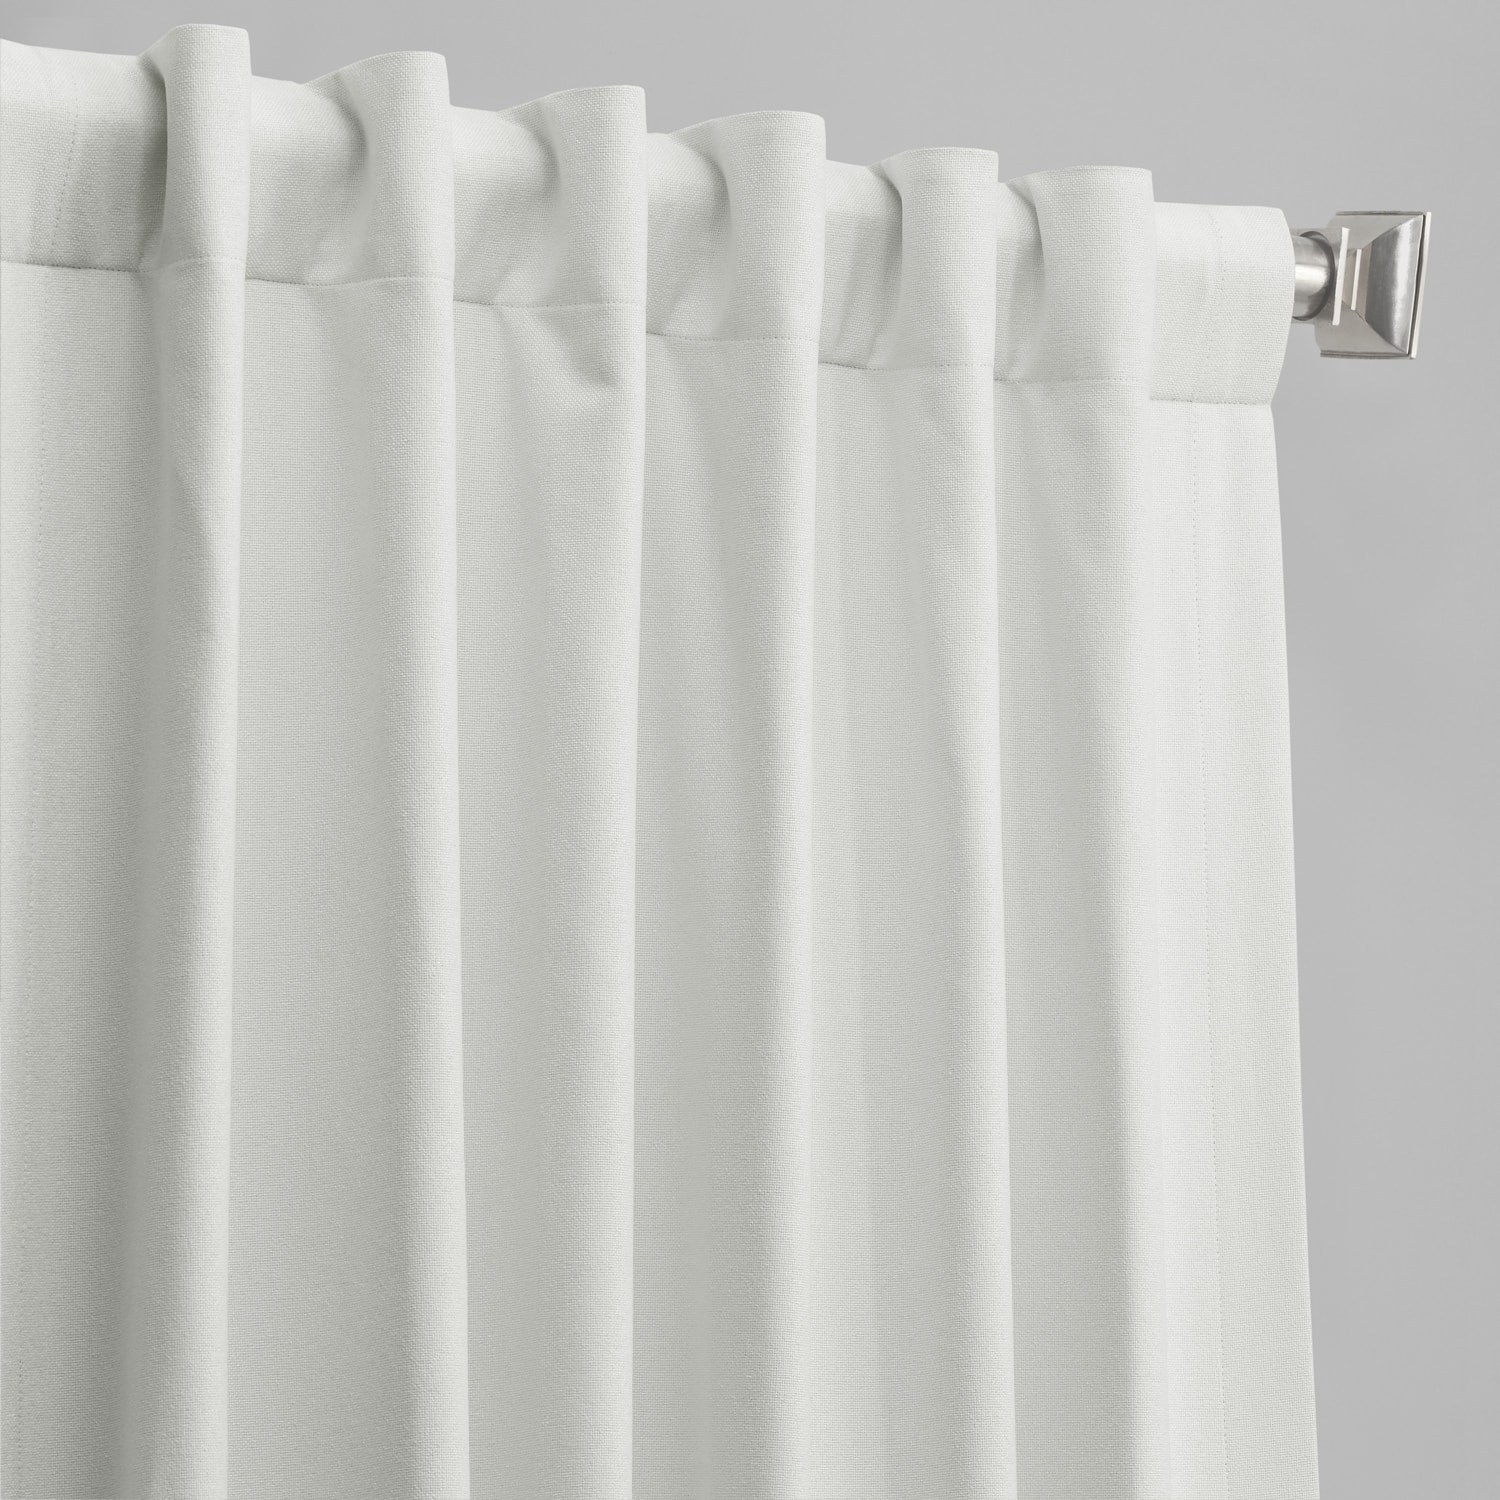 Starlight Off White Vintage Thermal Cross Linen Weave Max Blackout Curtain